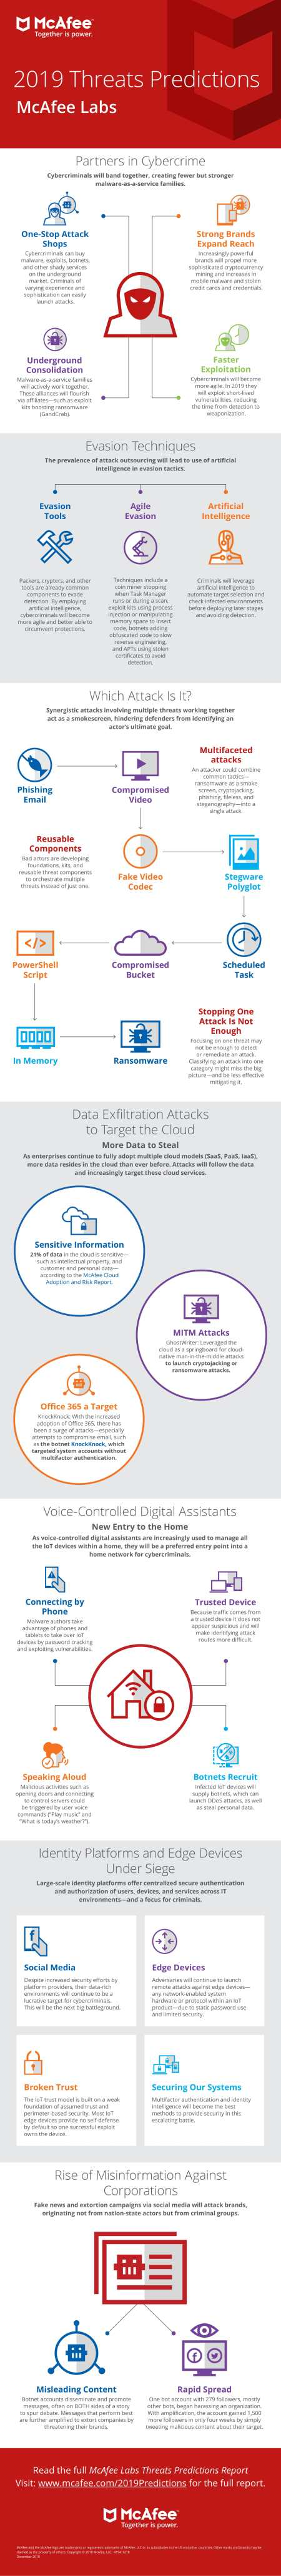 McAfee_Threat Predictions Infographic 2019-1